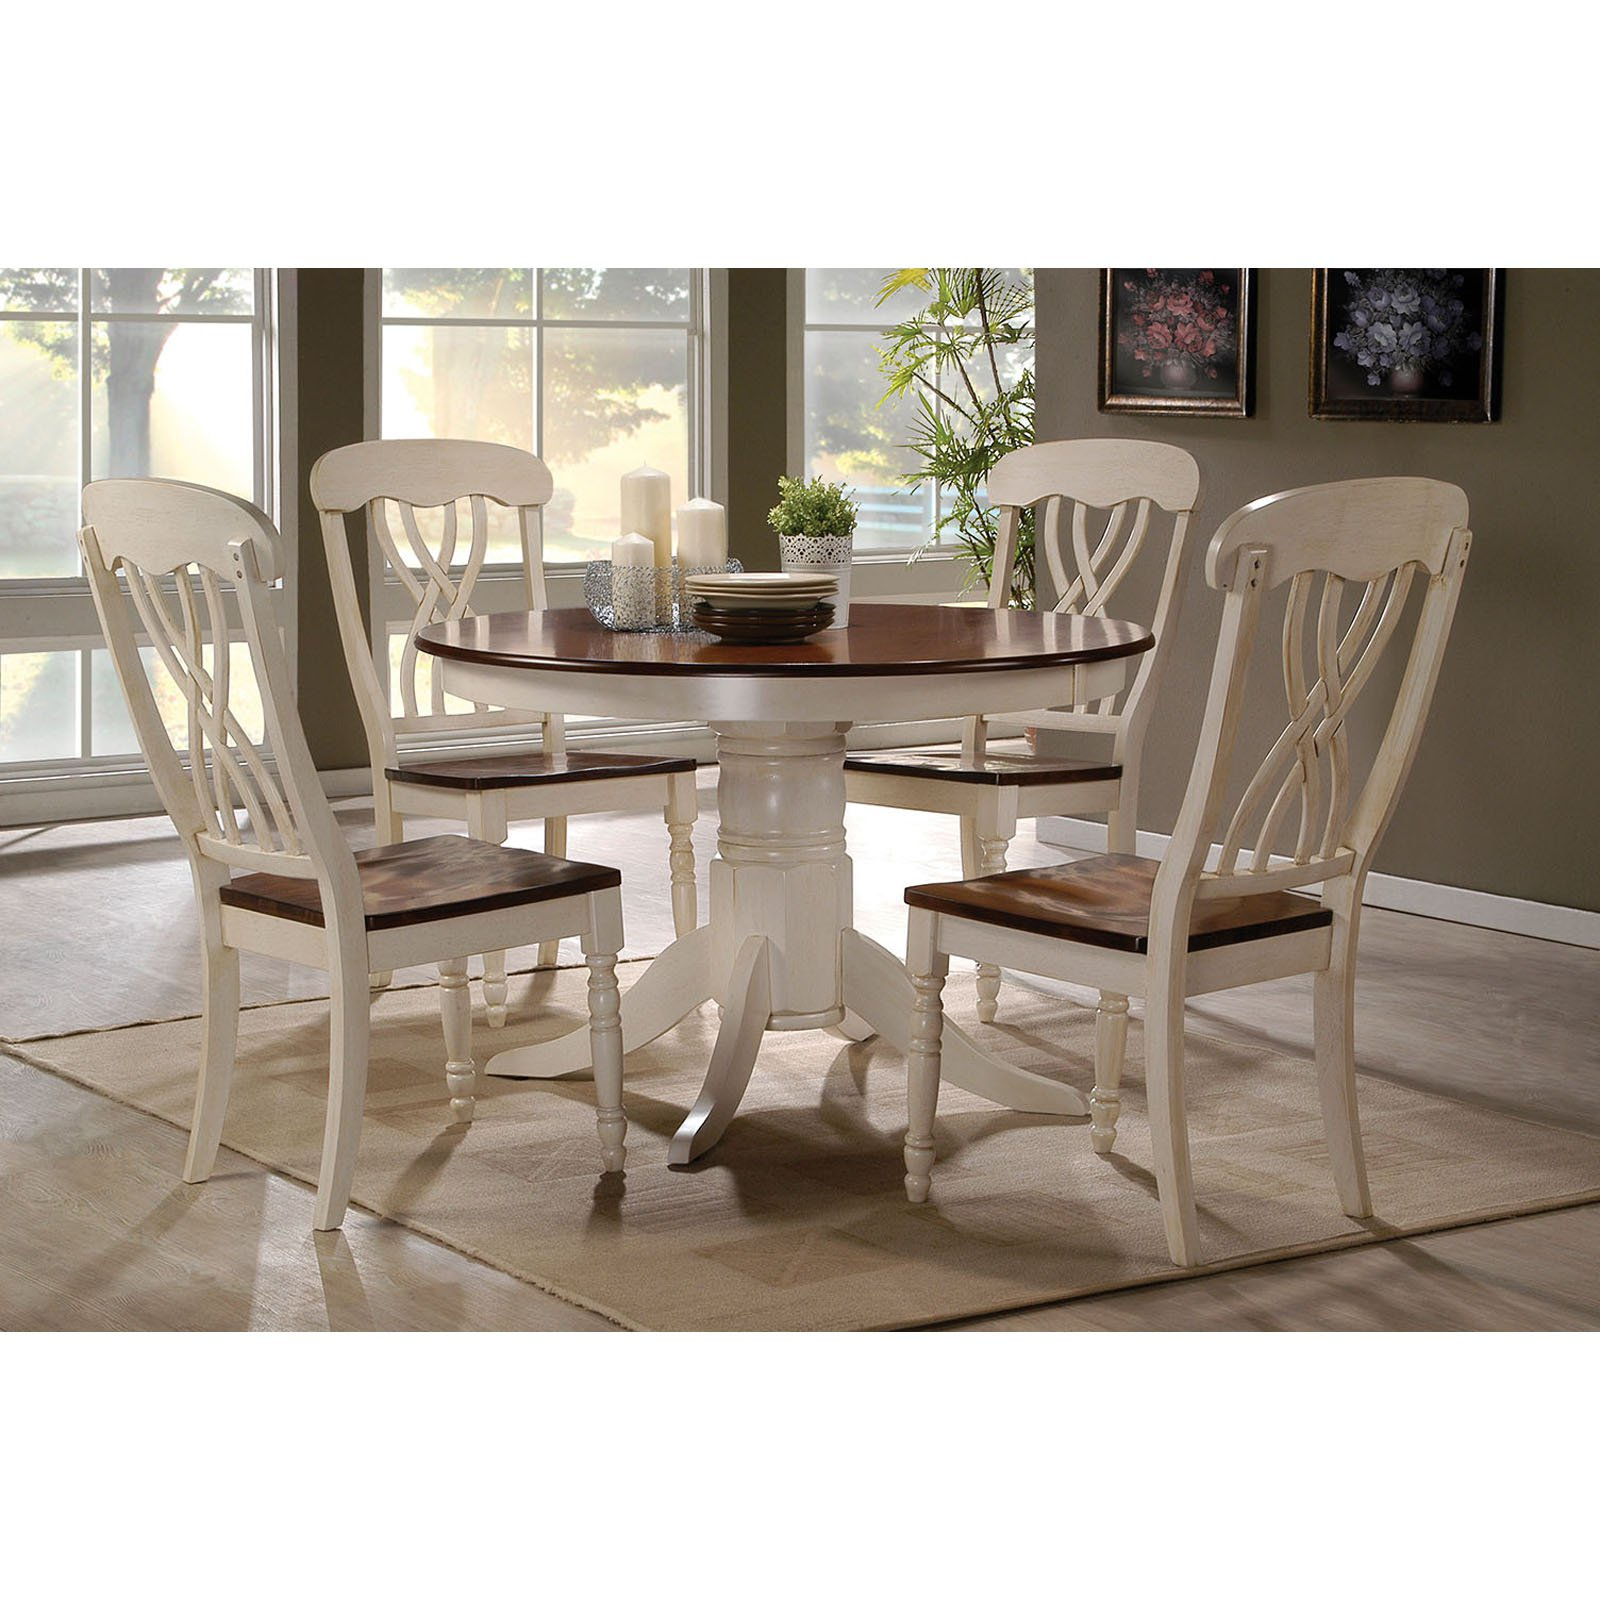 Acme Dylan Side Chair, Buttermilk and Oak, Set of 2